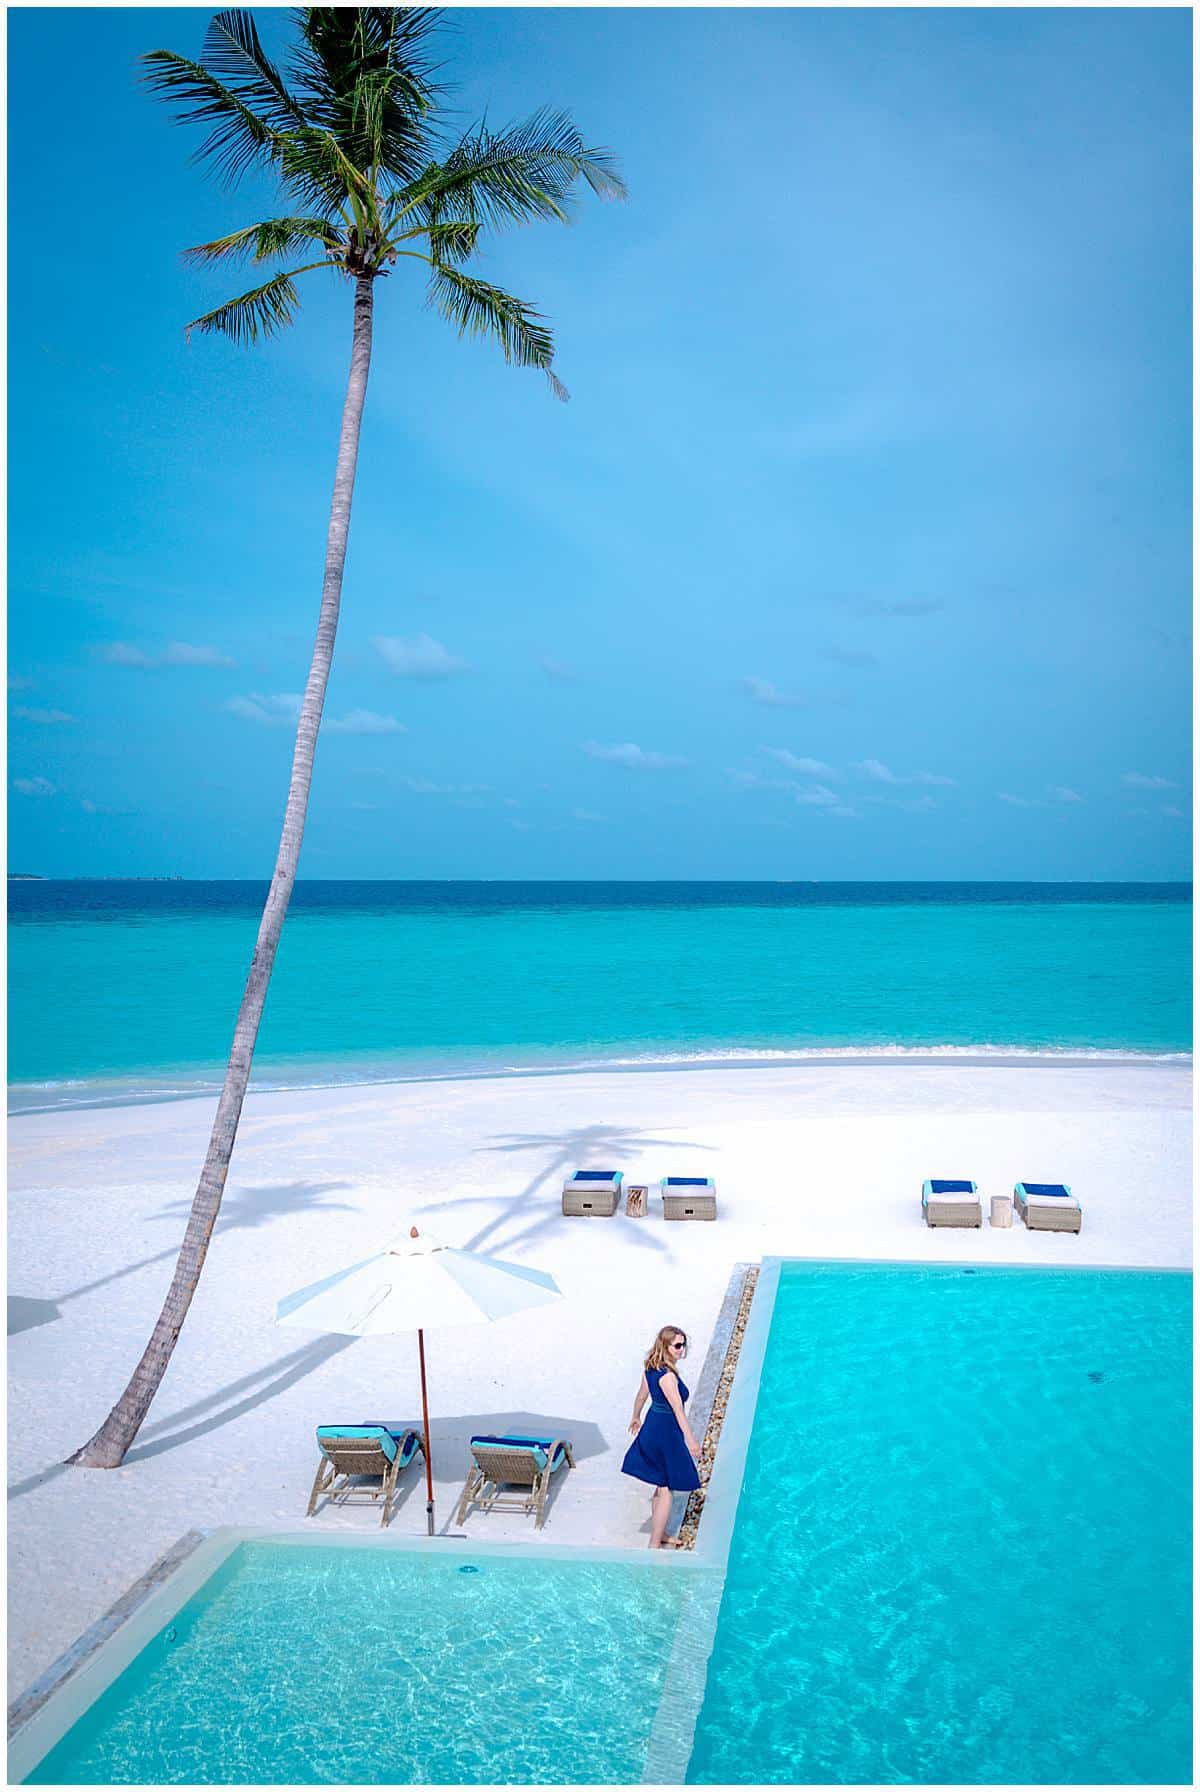 There are more things to do in the Maldives than just hang around the pool...